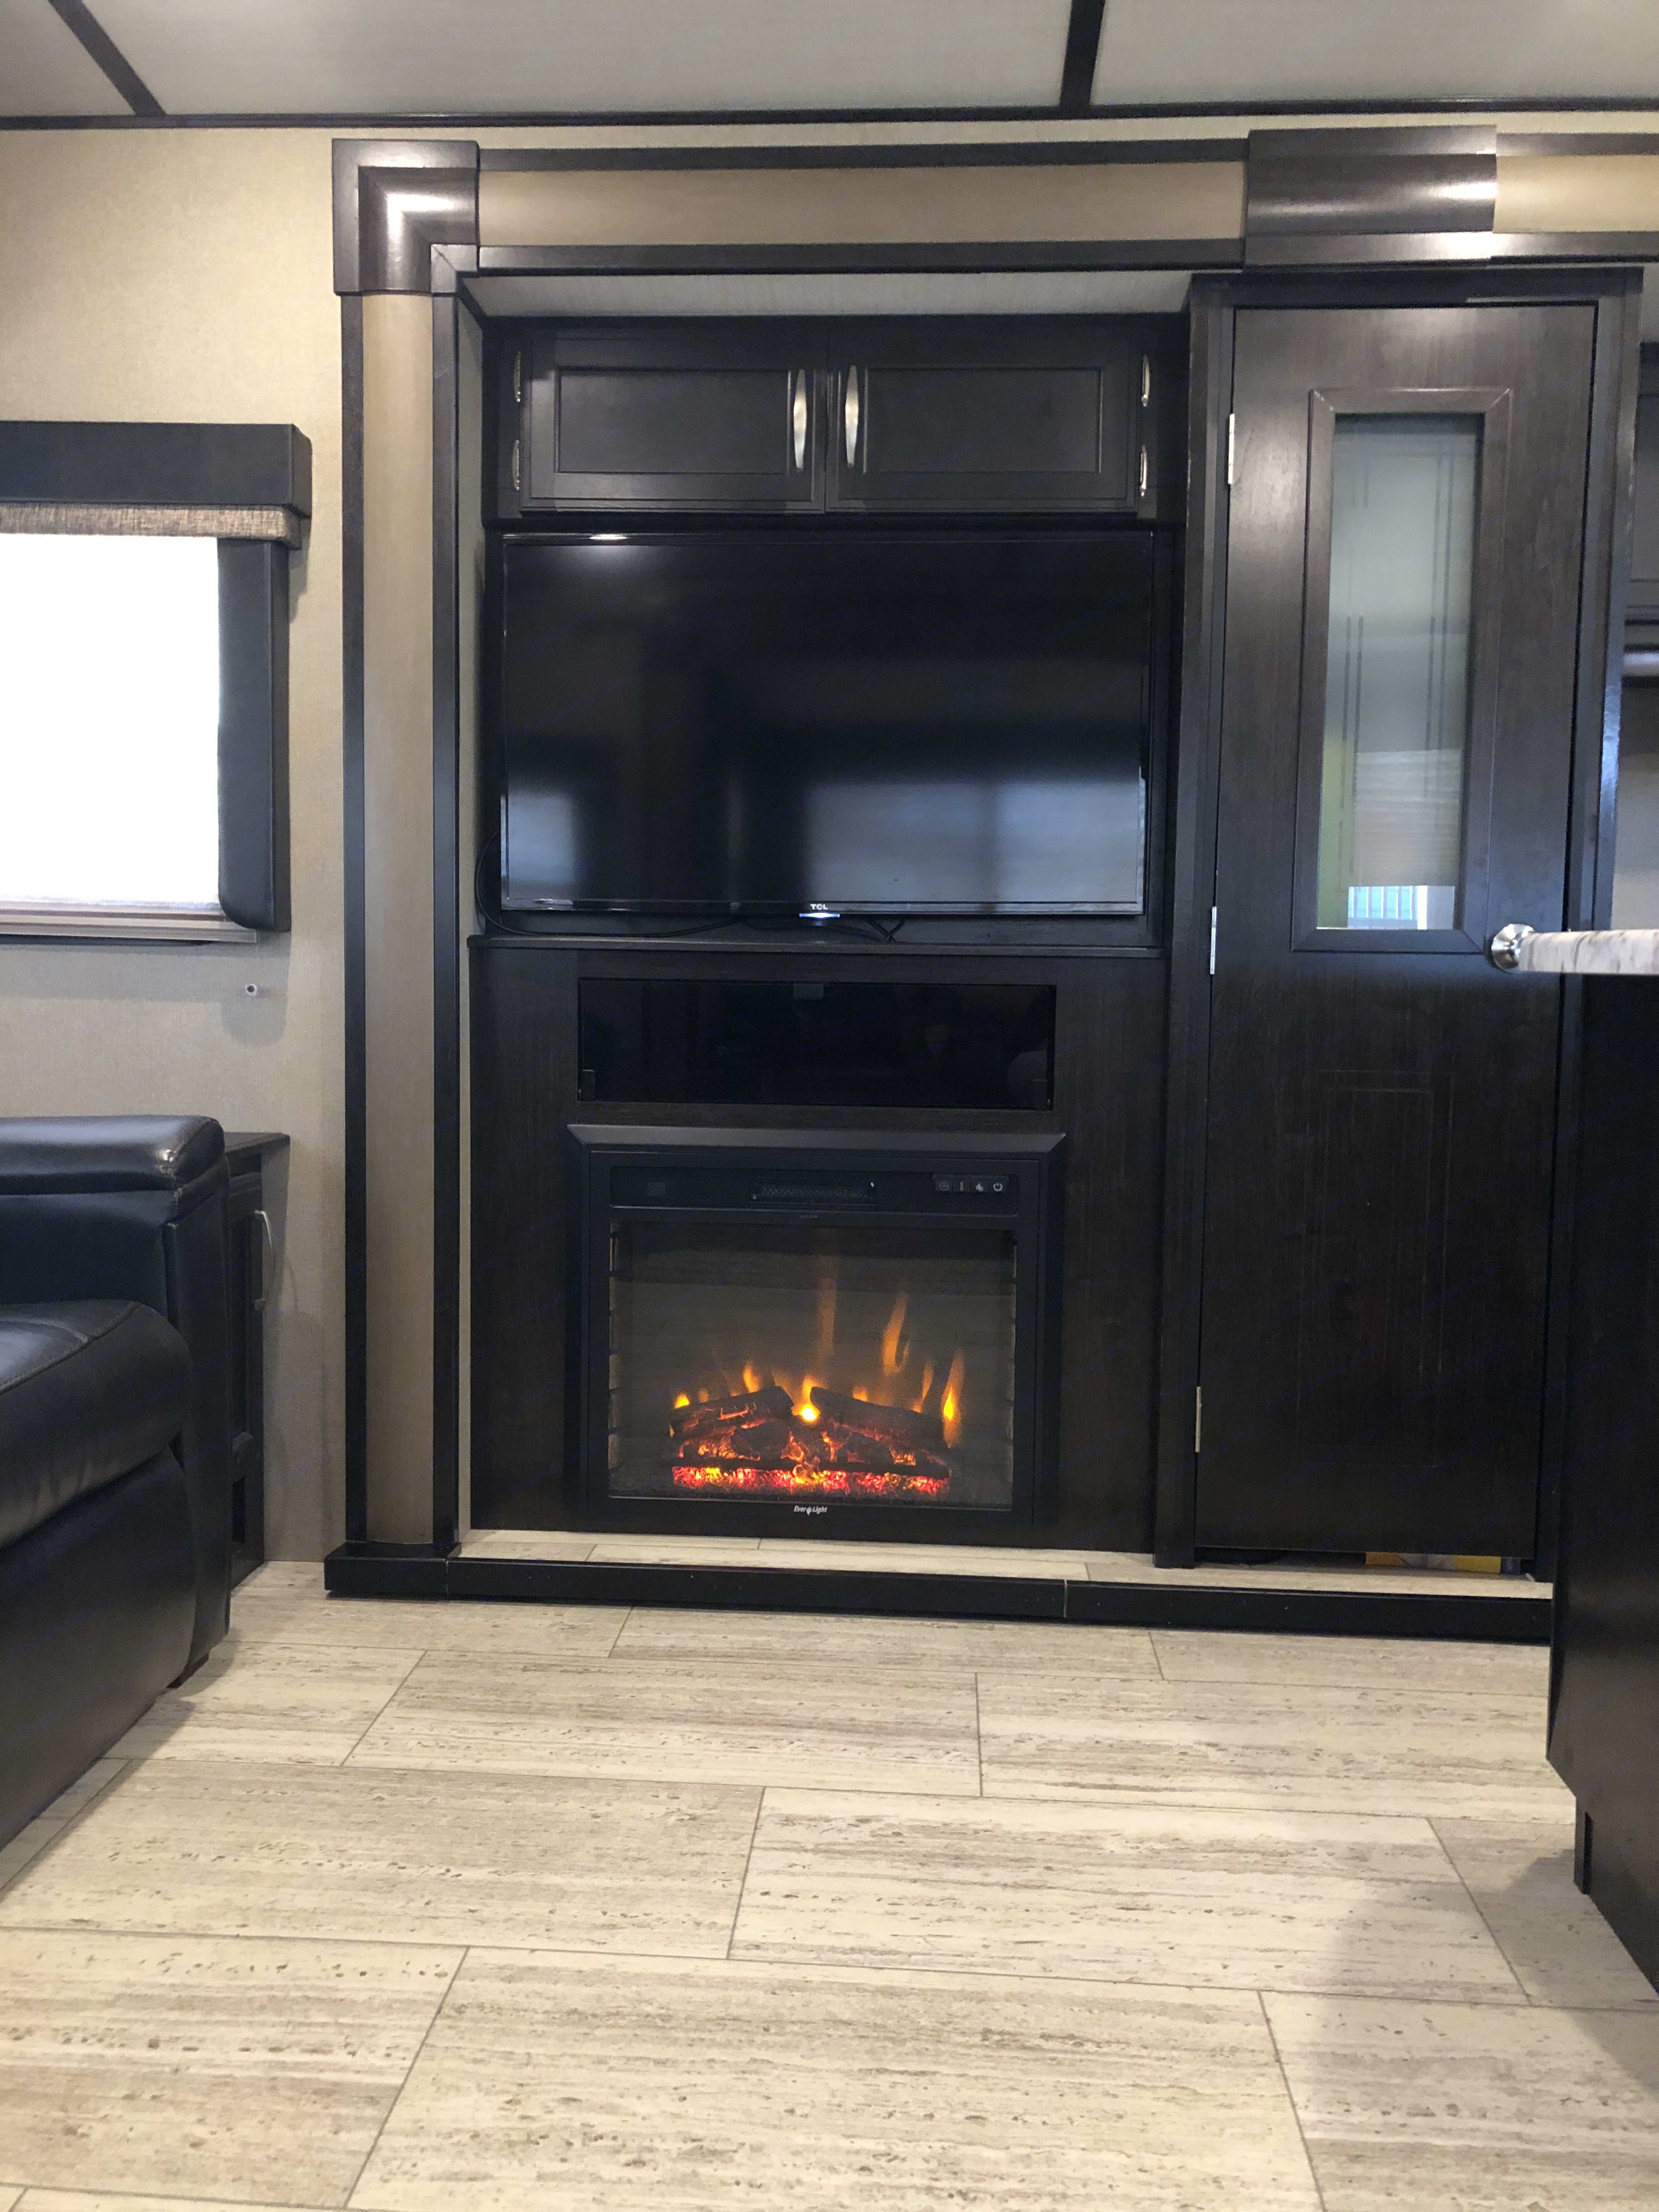 fire place can be used at different settings. just lighting or provide heat at 4 different settings. Grand Design Imagine RL2970 2019